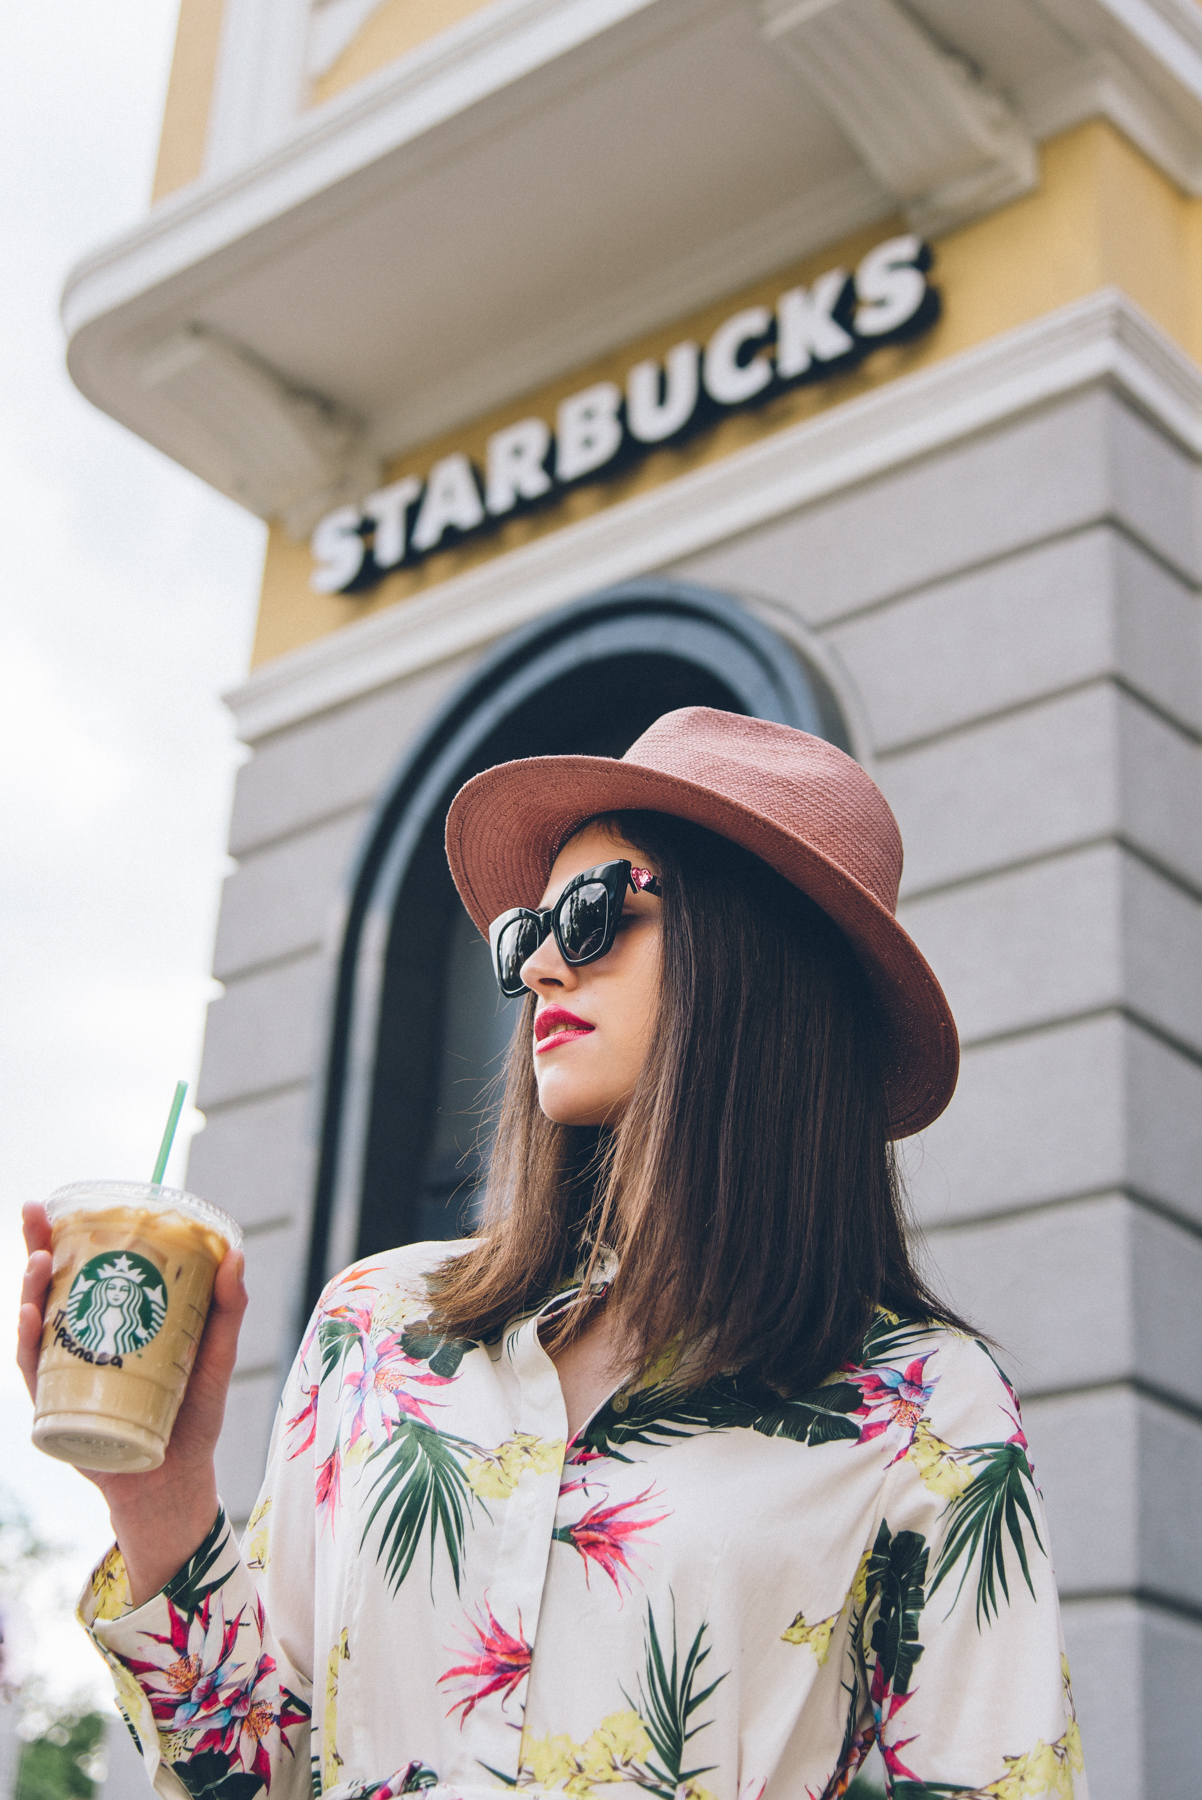 FASHION LOCATION: Starbucks